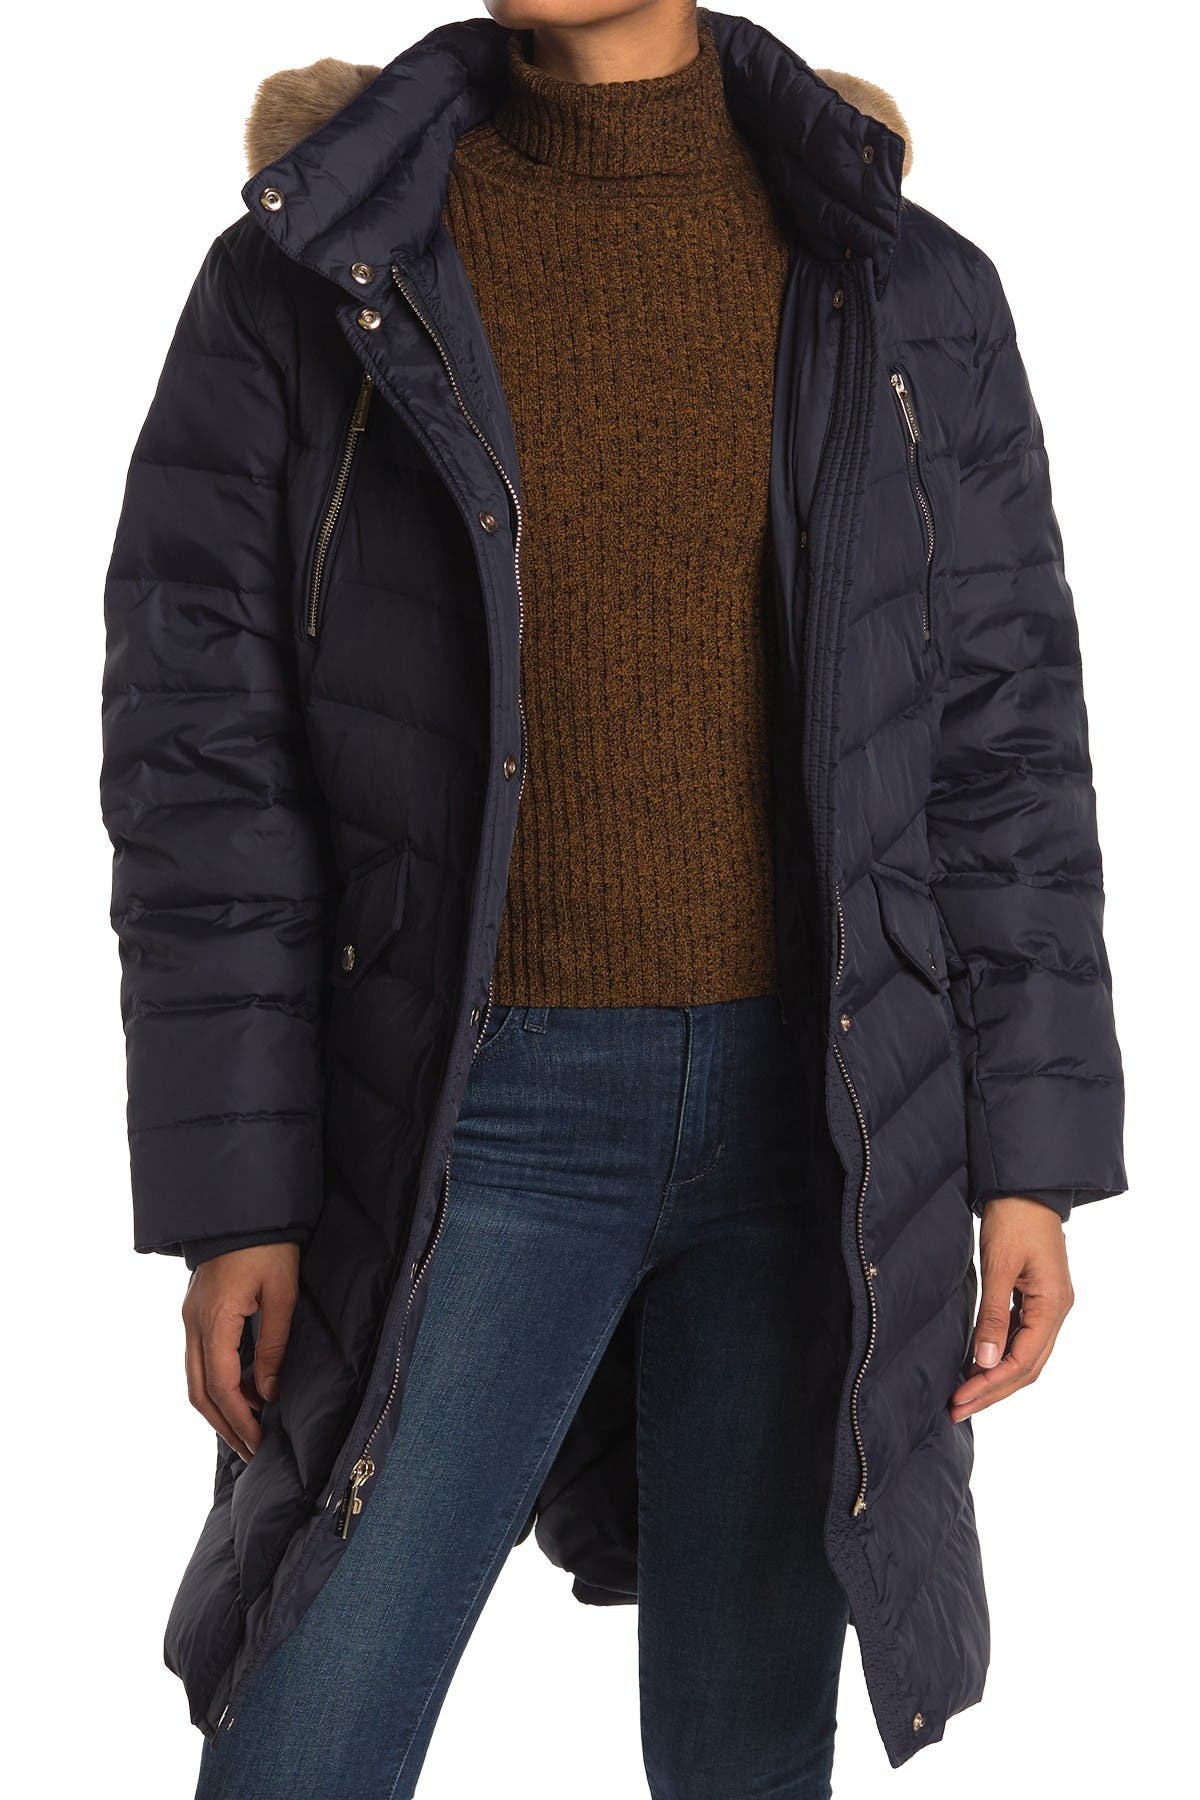 Image of Michael Kors Quilted Faux Fur Trim Parka